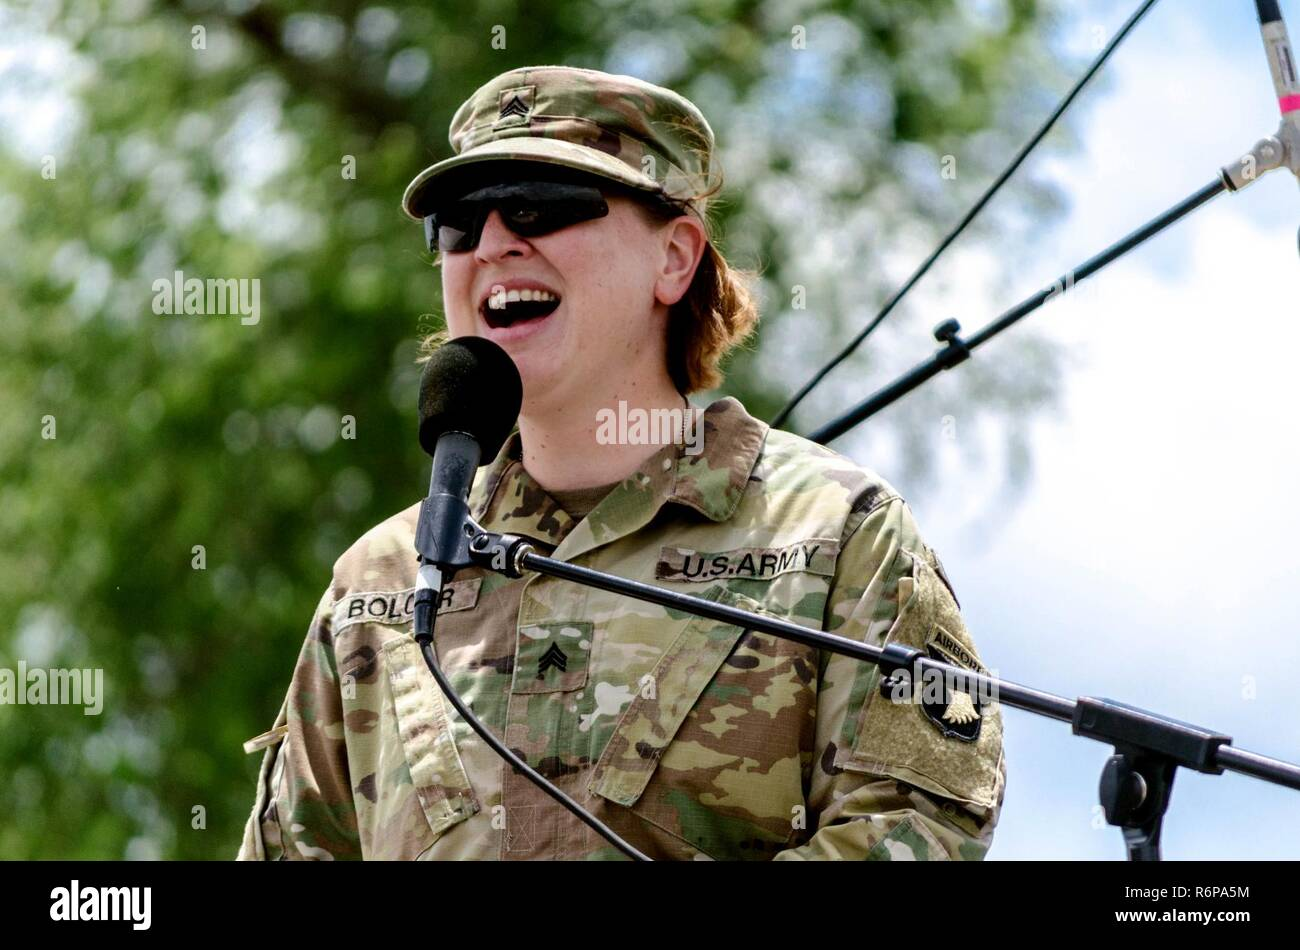 Sgt. Katherine Bolcar, 101st Airborne Division Band and vocalist for Big 5, serenades the crowd gathered at the Air Assault School's community fair for Week of the Eagles. - Stock Image